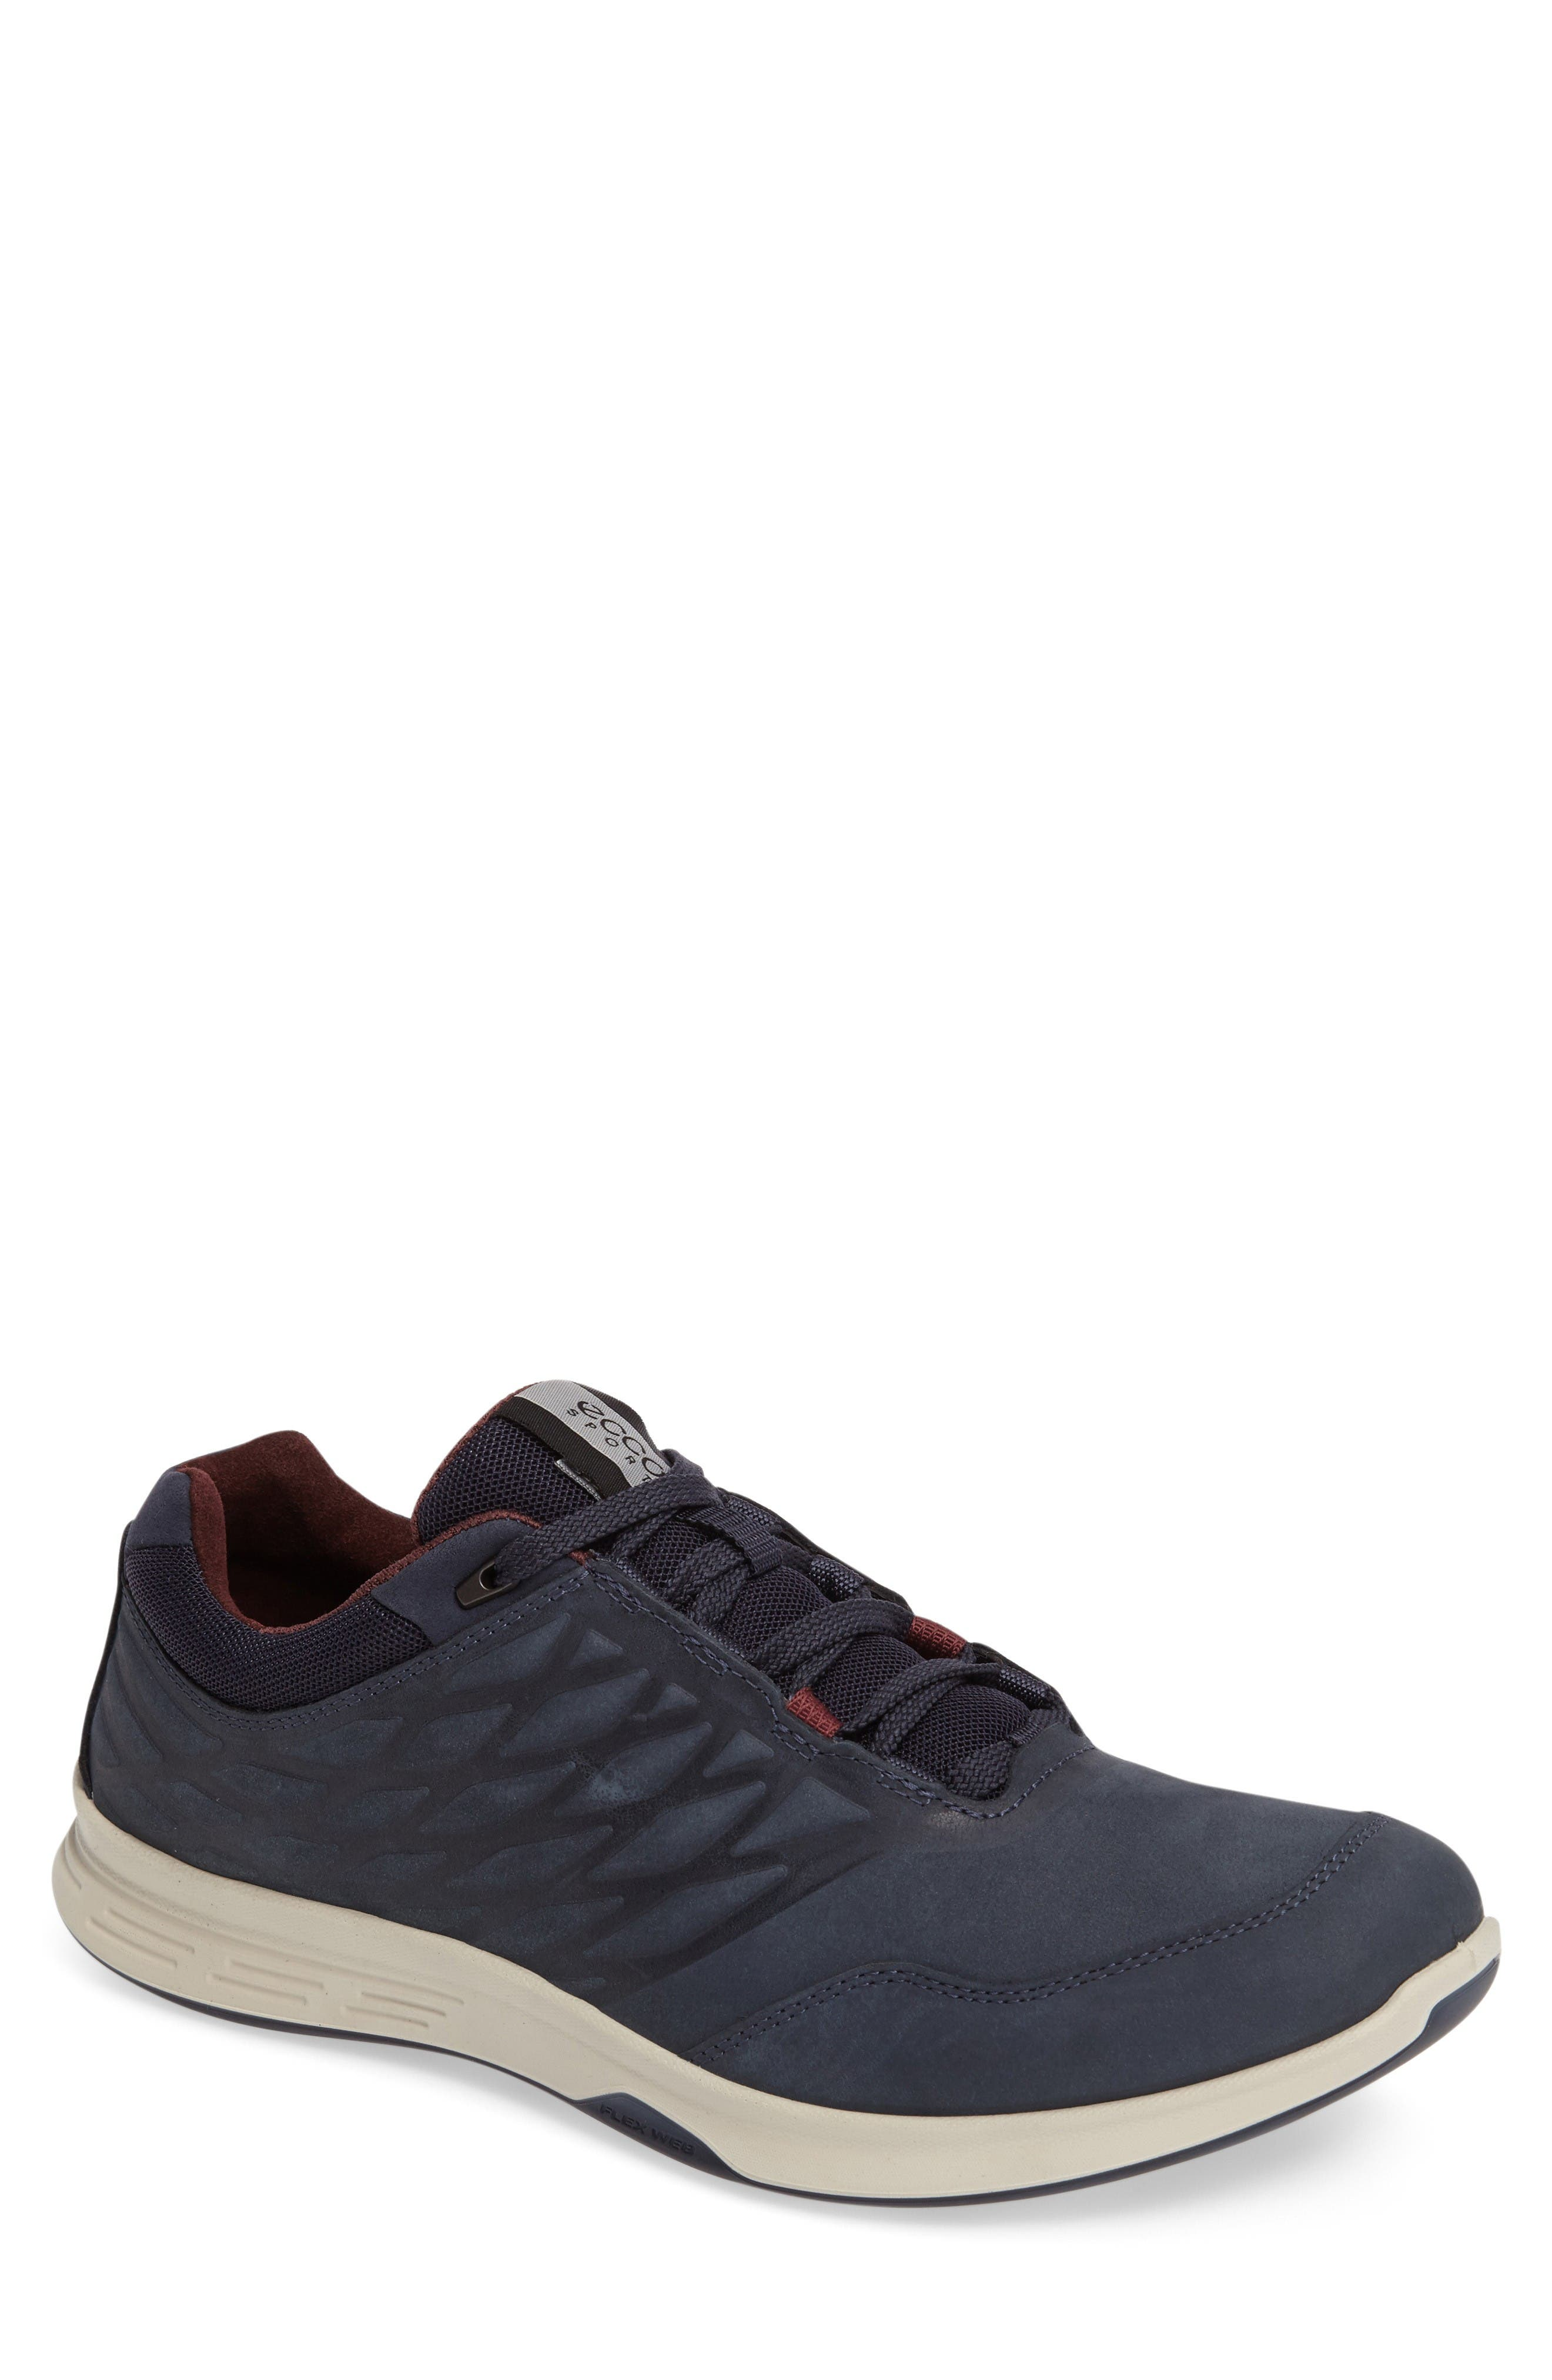 'Exceed' Leather Sneaker,                             Main thumbnail 1, color,                             Marine